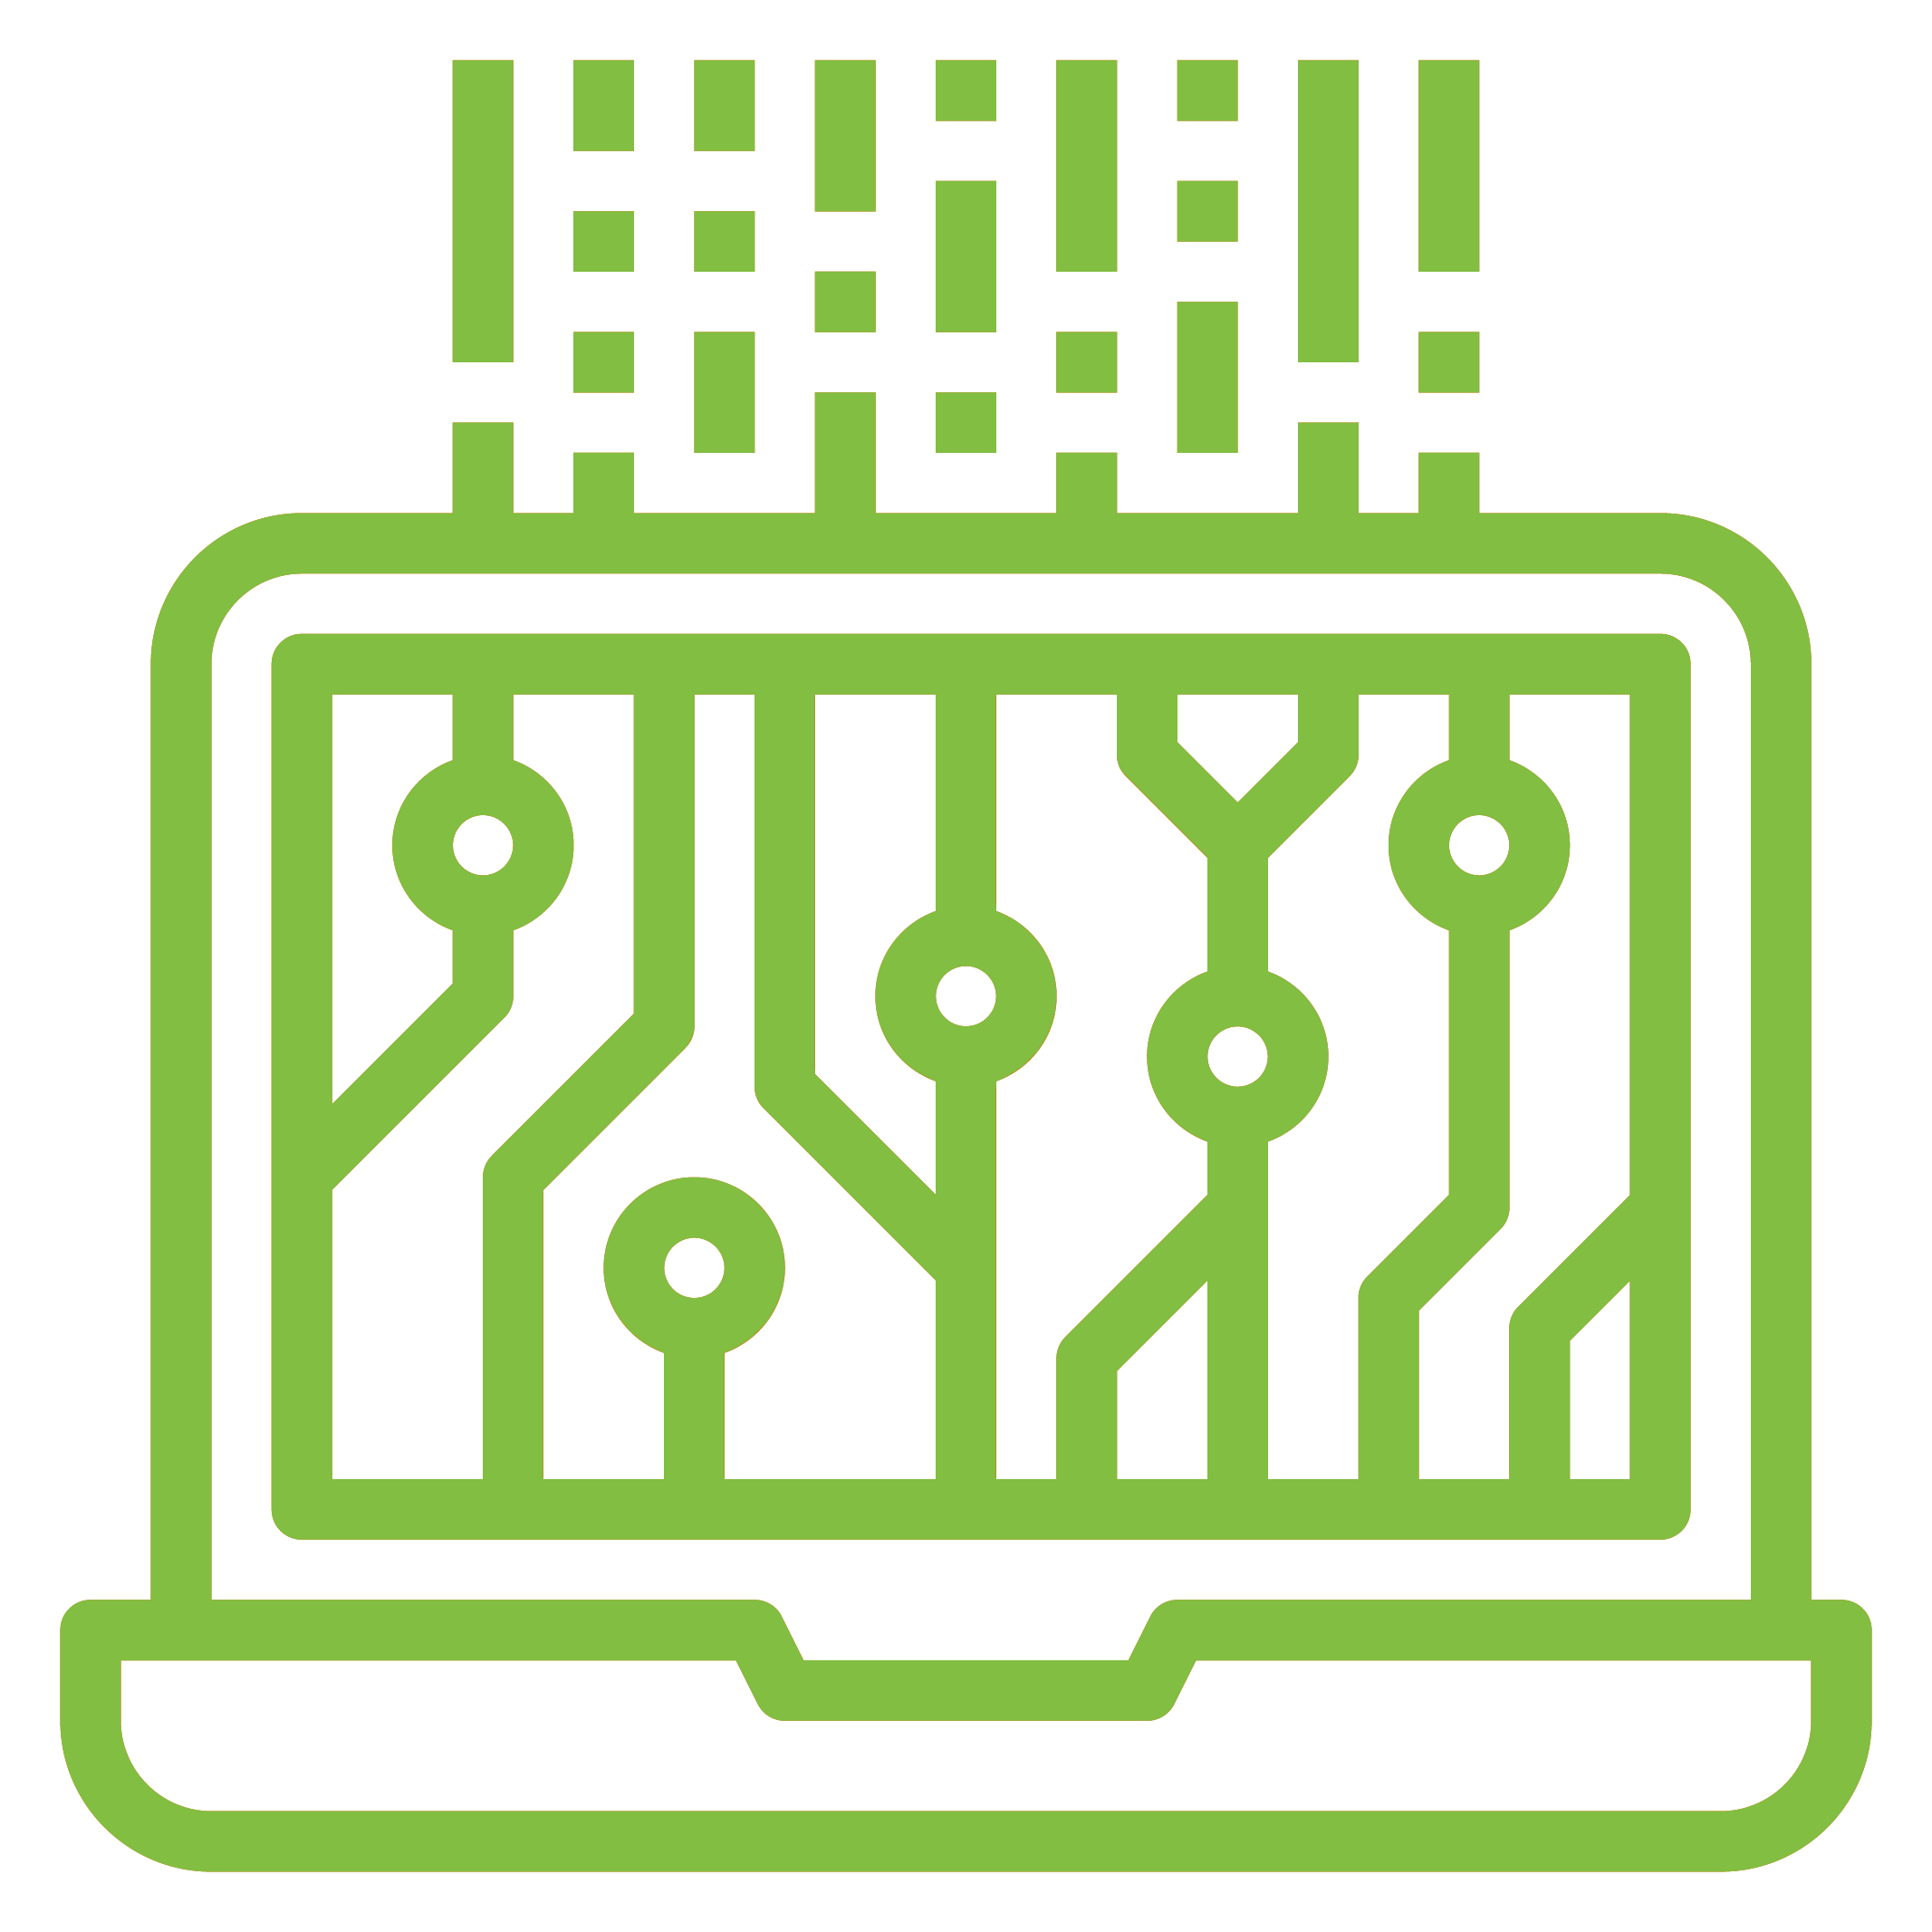 IT systems icon